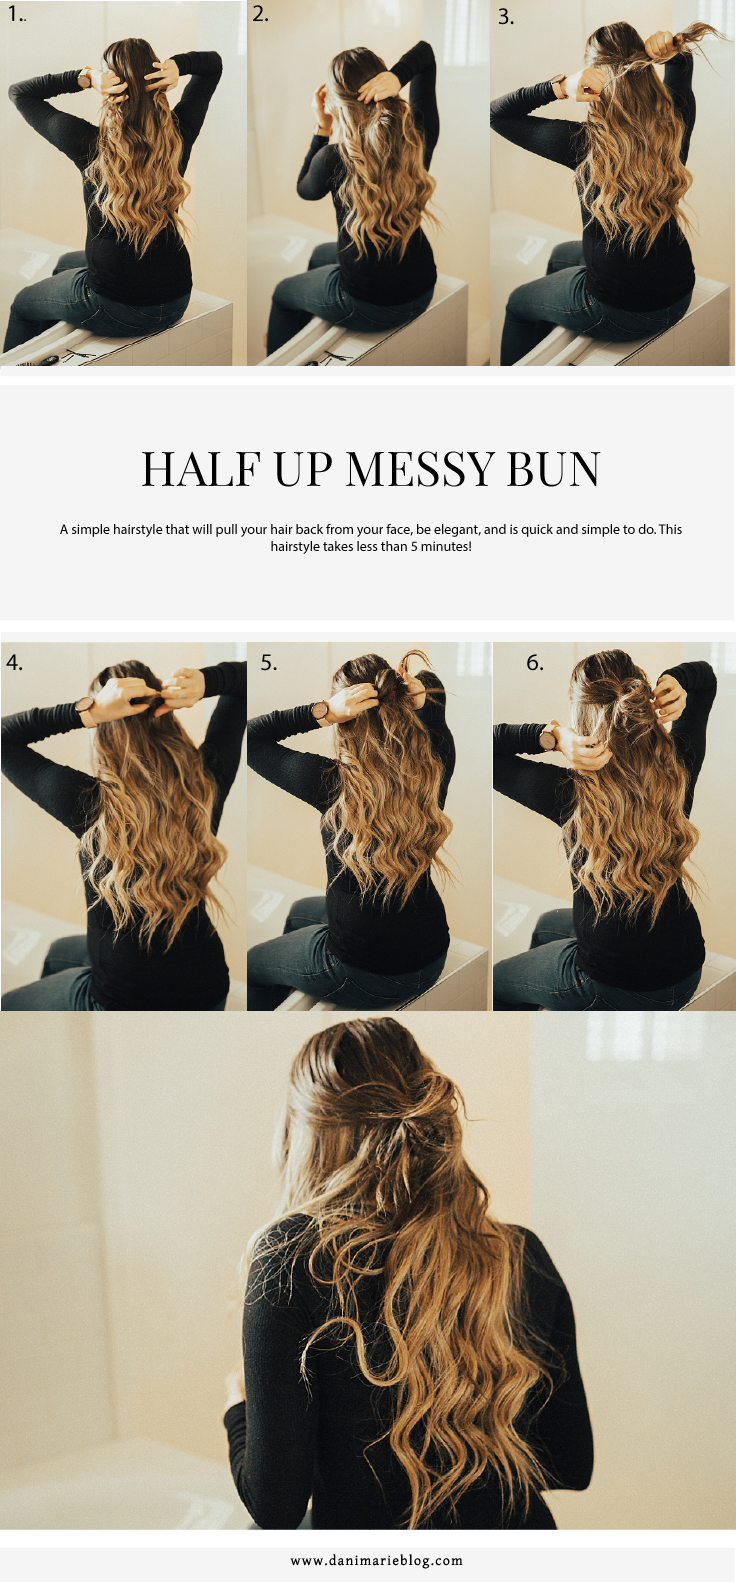 Bookmark this ASAP for this super easy half up messy bun tutorial HERE!